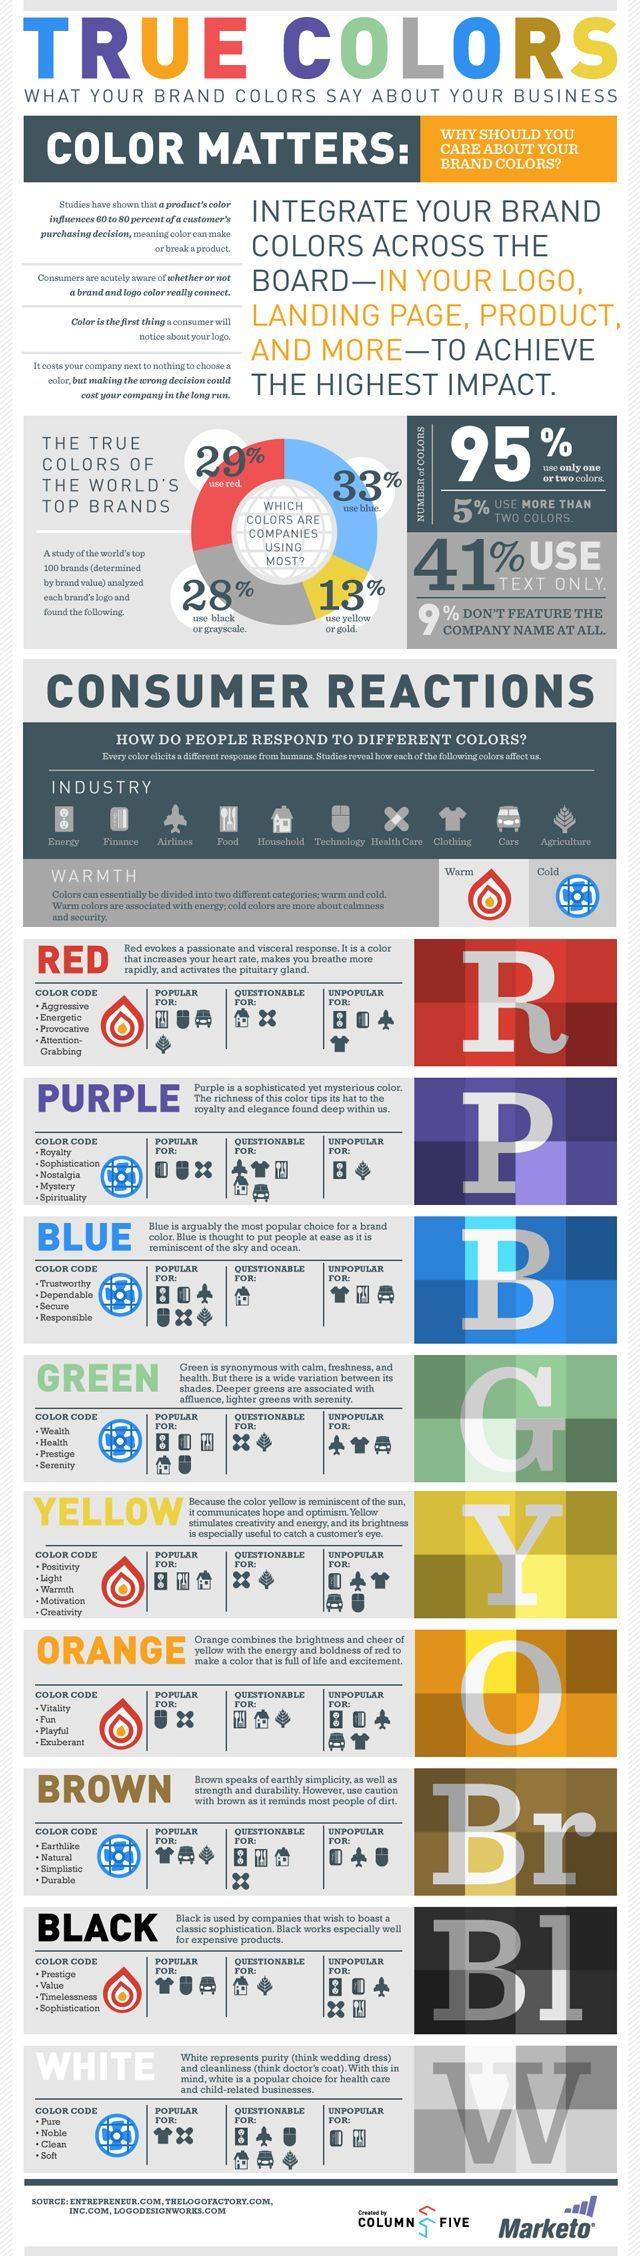 38 best webdesign images on pinterest graph design advertising color matters what your brand colors say about your business fandeluxe Choice Image